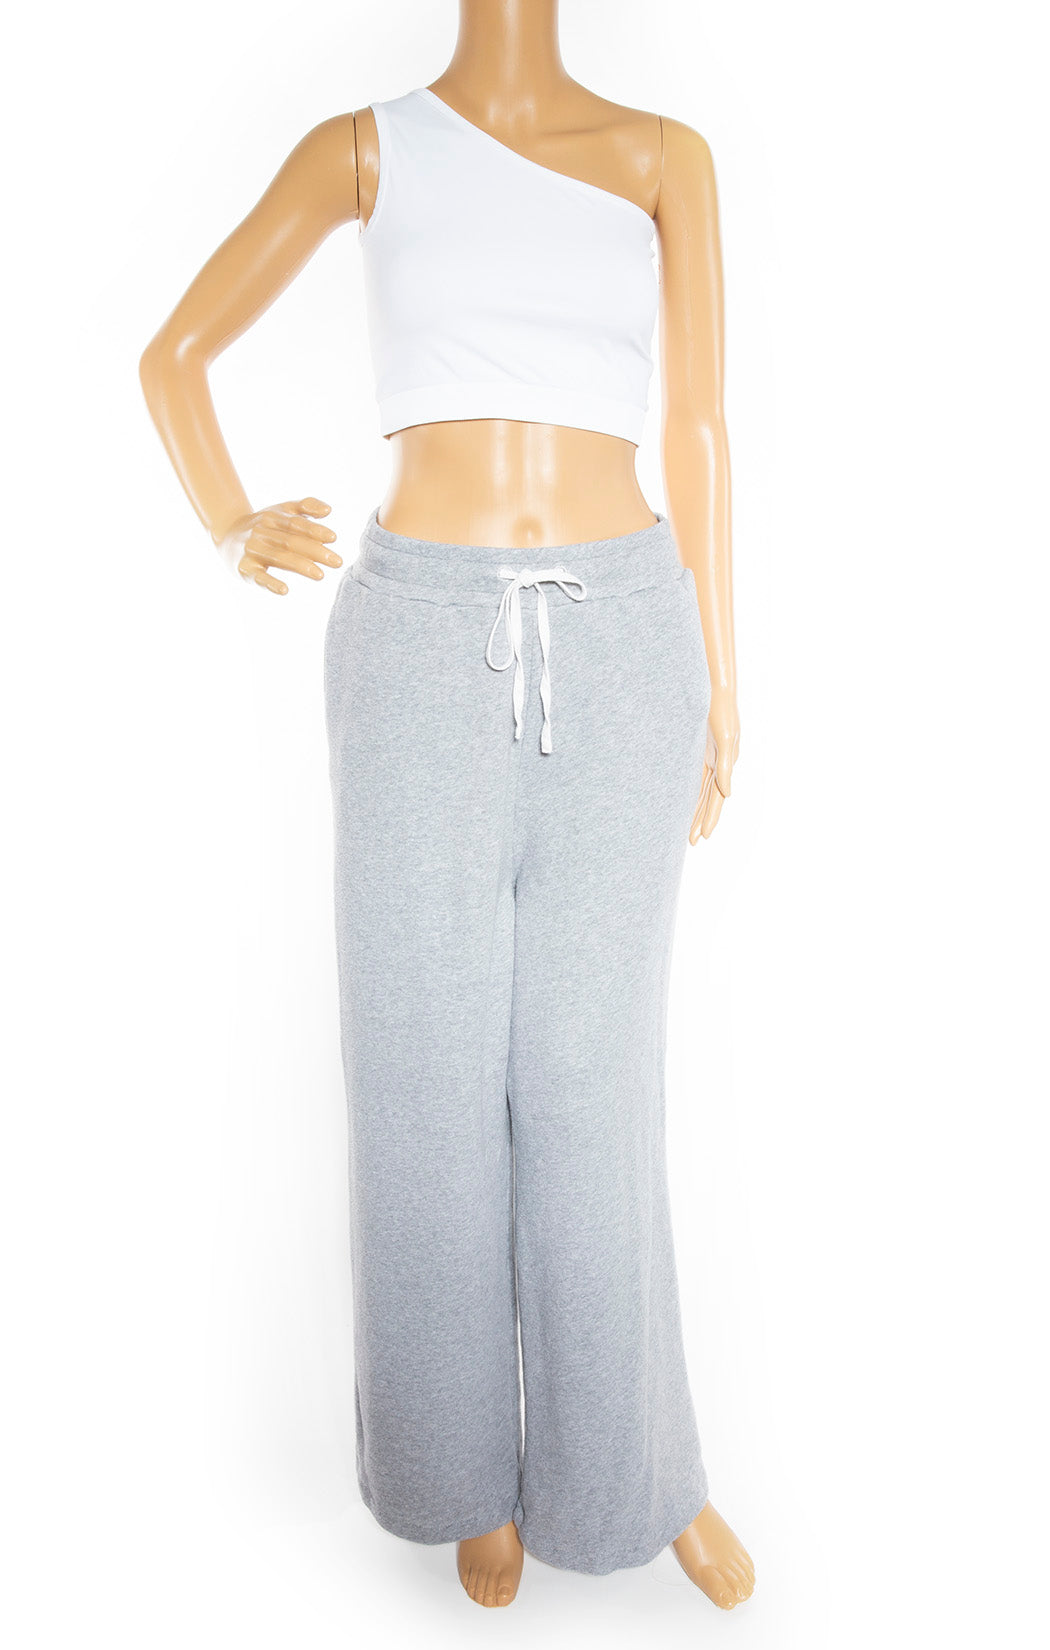 Front view of MELITTA BAUMEISTER Sweatpants Size: Small